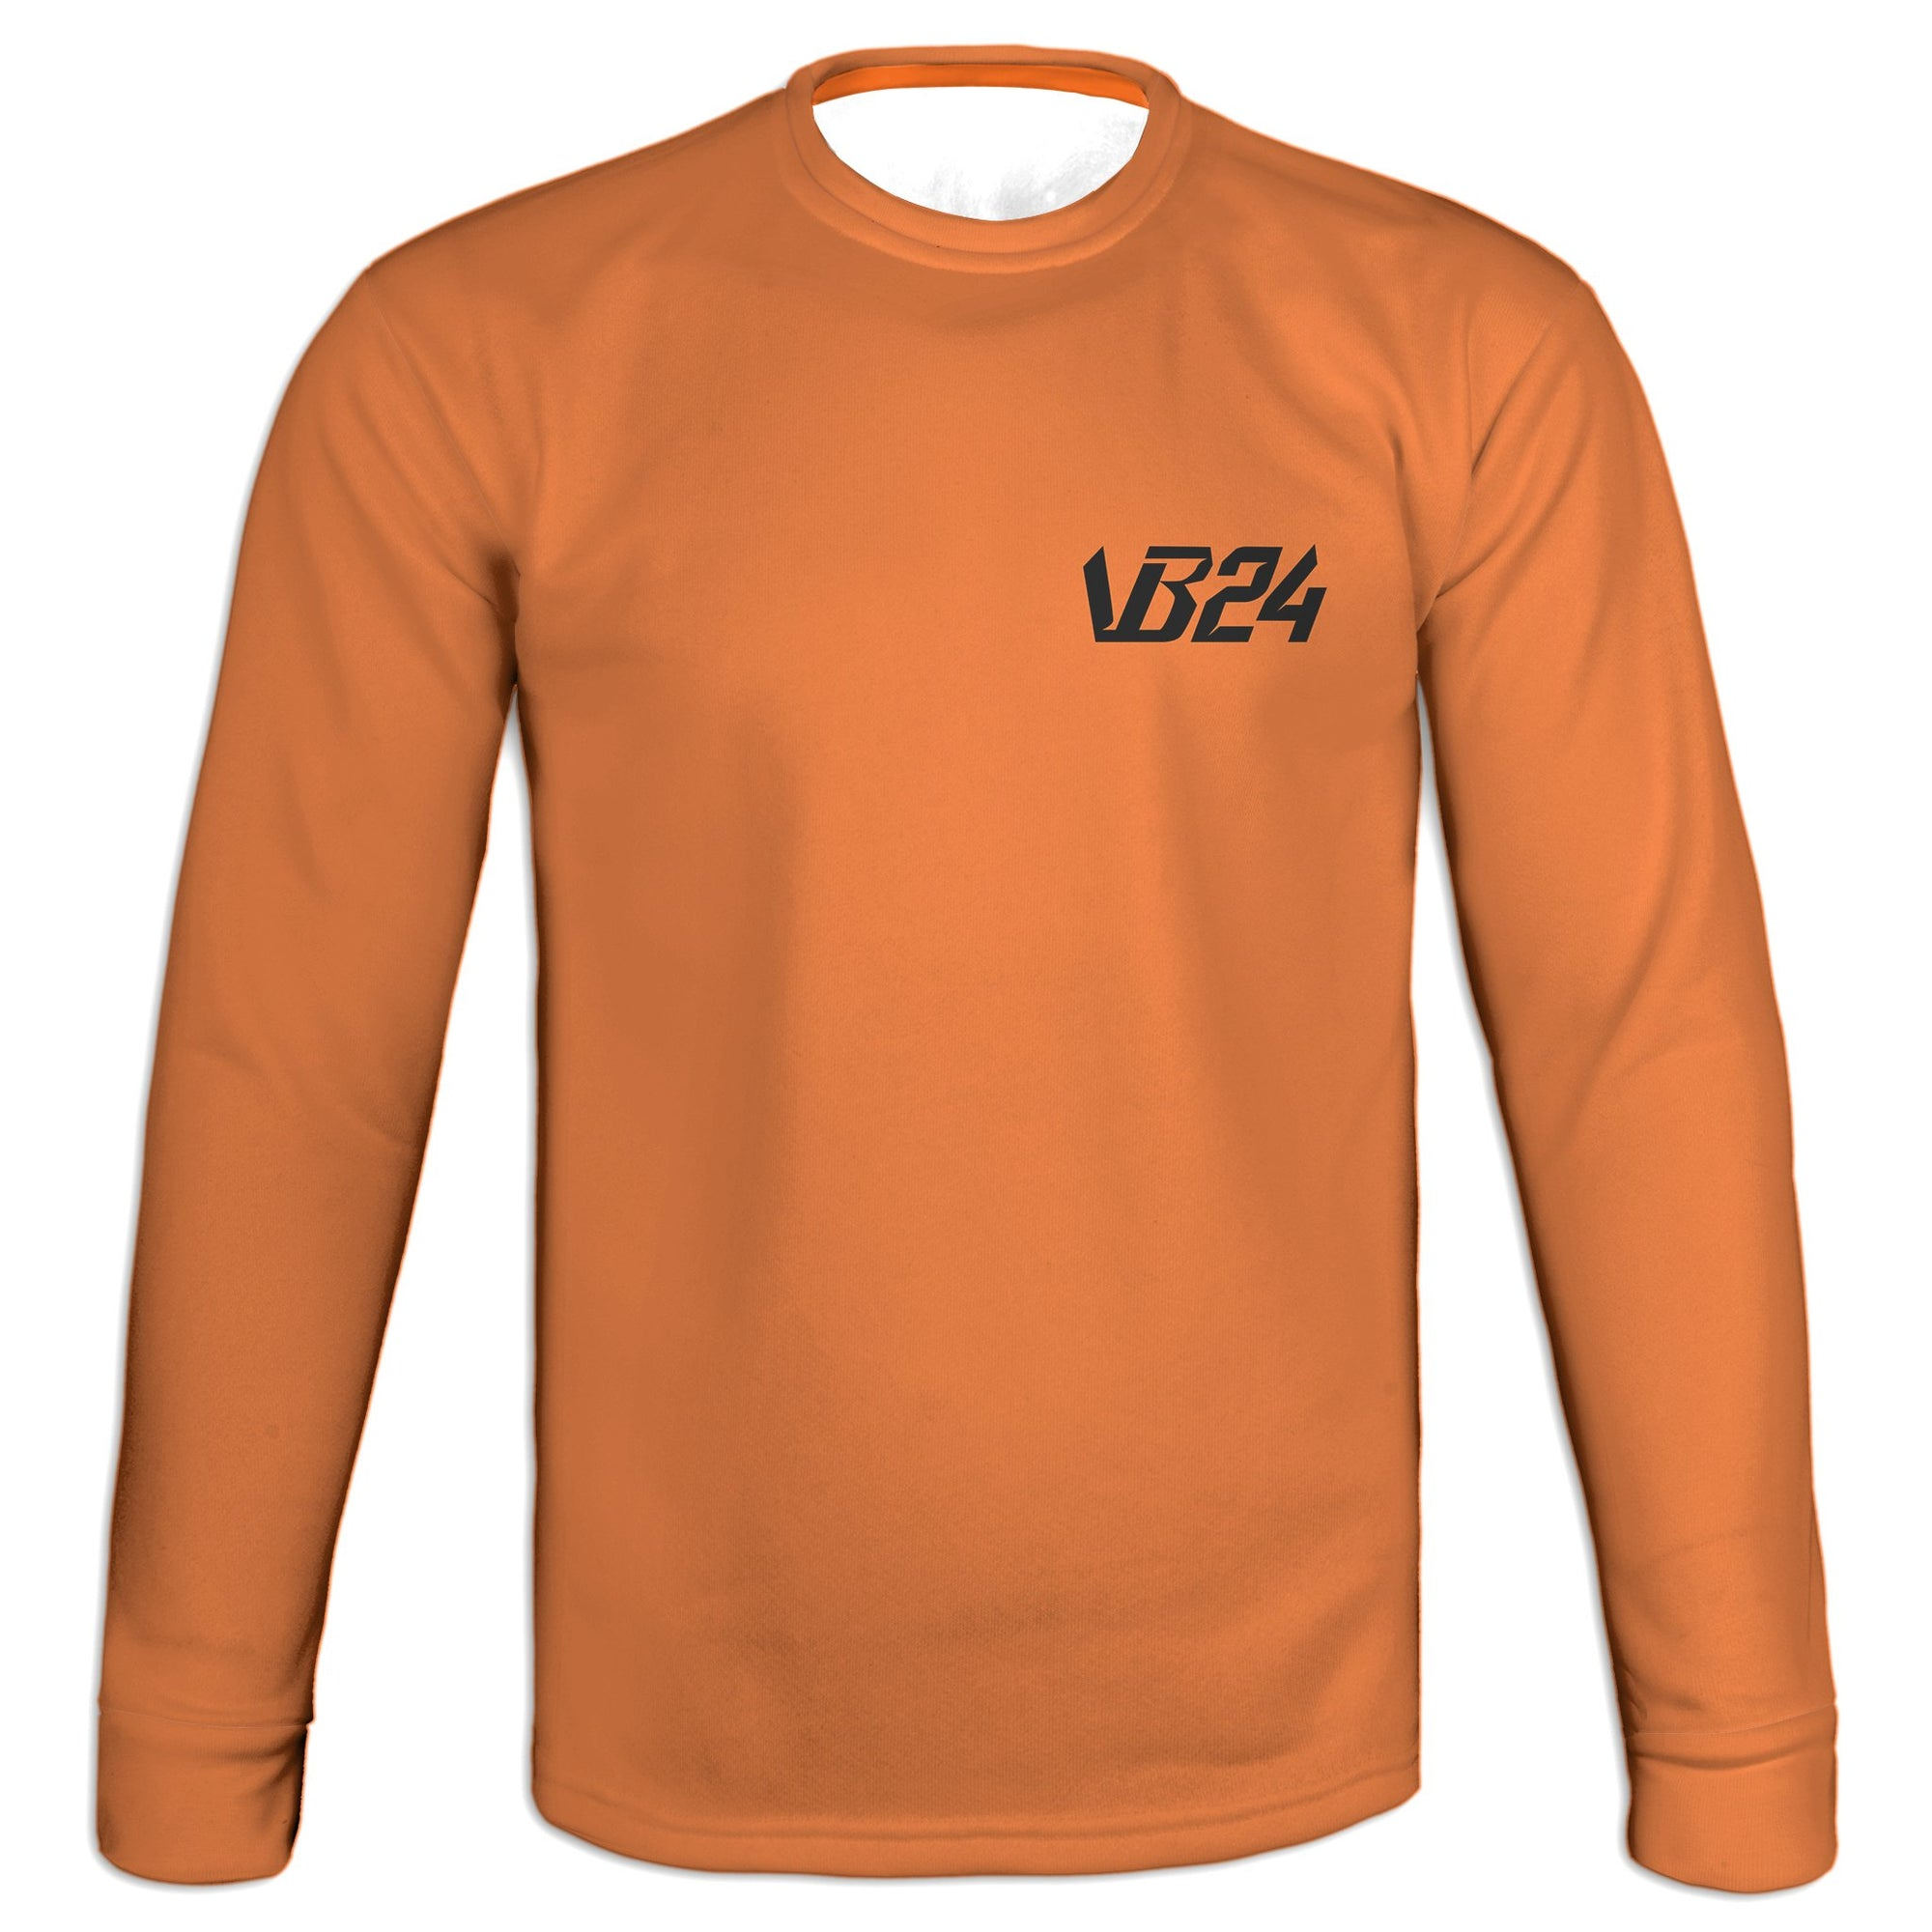 Twenty Four - Orange Sweatshirt | vonbellshop.com